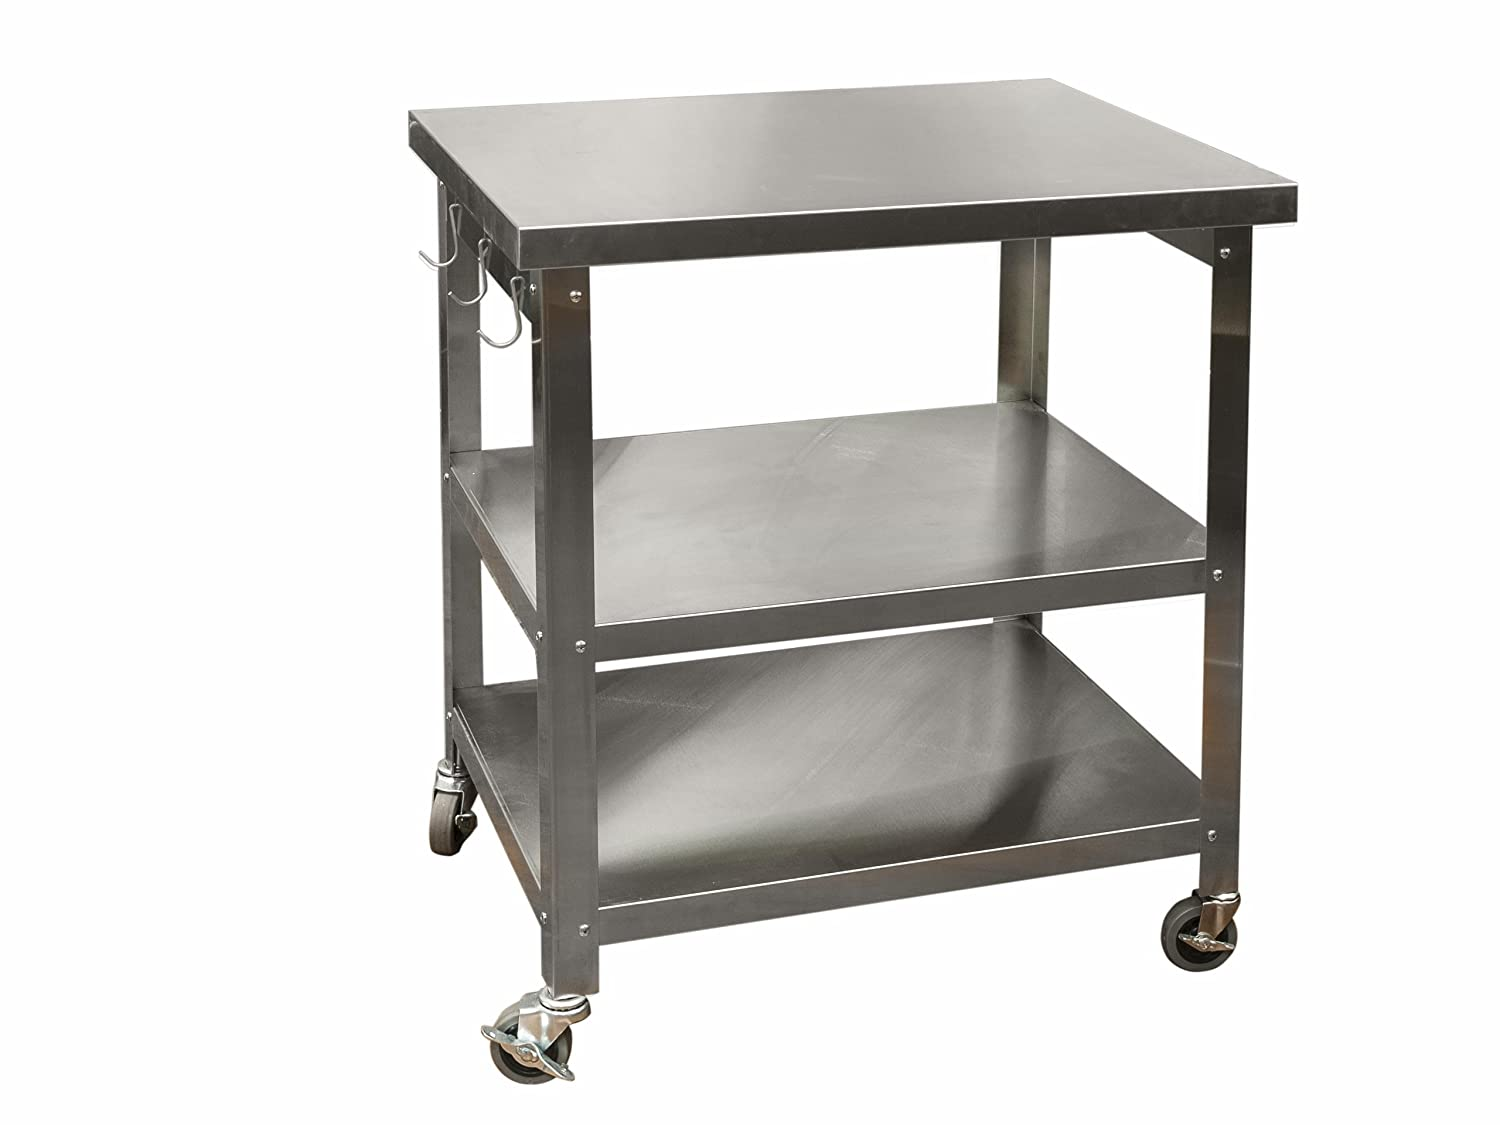 Merveilleux Amazon.com   Danver Stainless Steel Kitchen Cart, 30 Inch   Kitchen Islands  U0026 Carts